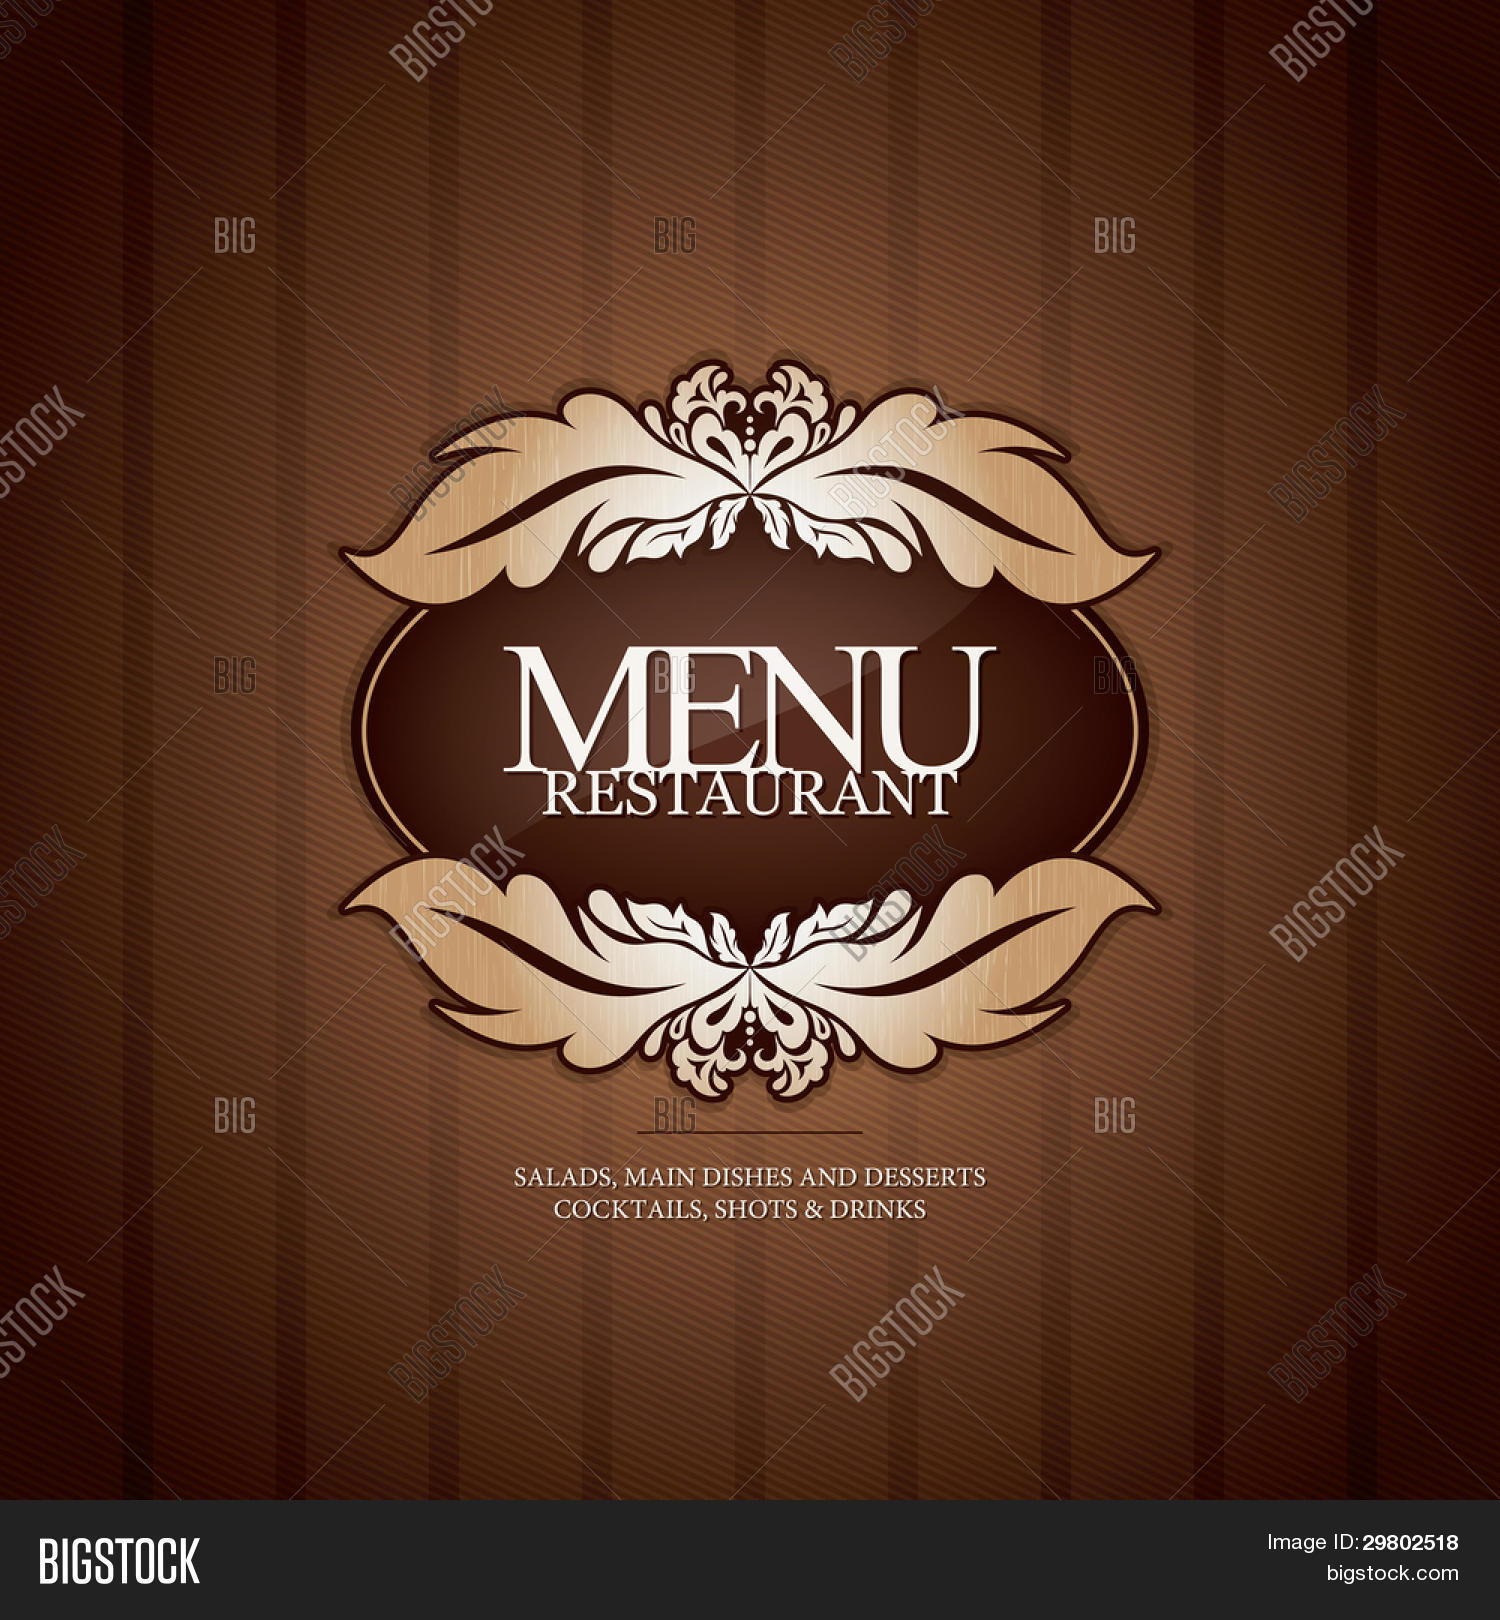 restaurant menu vector & photo (free trial) | bigstock